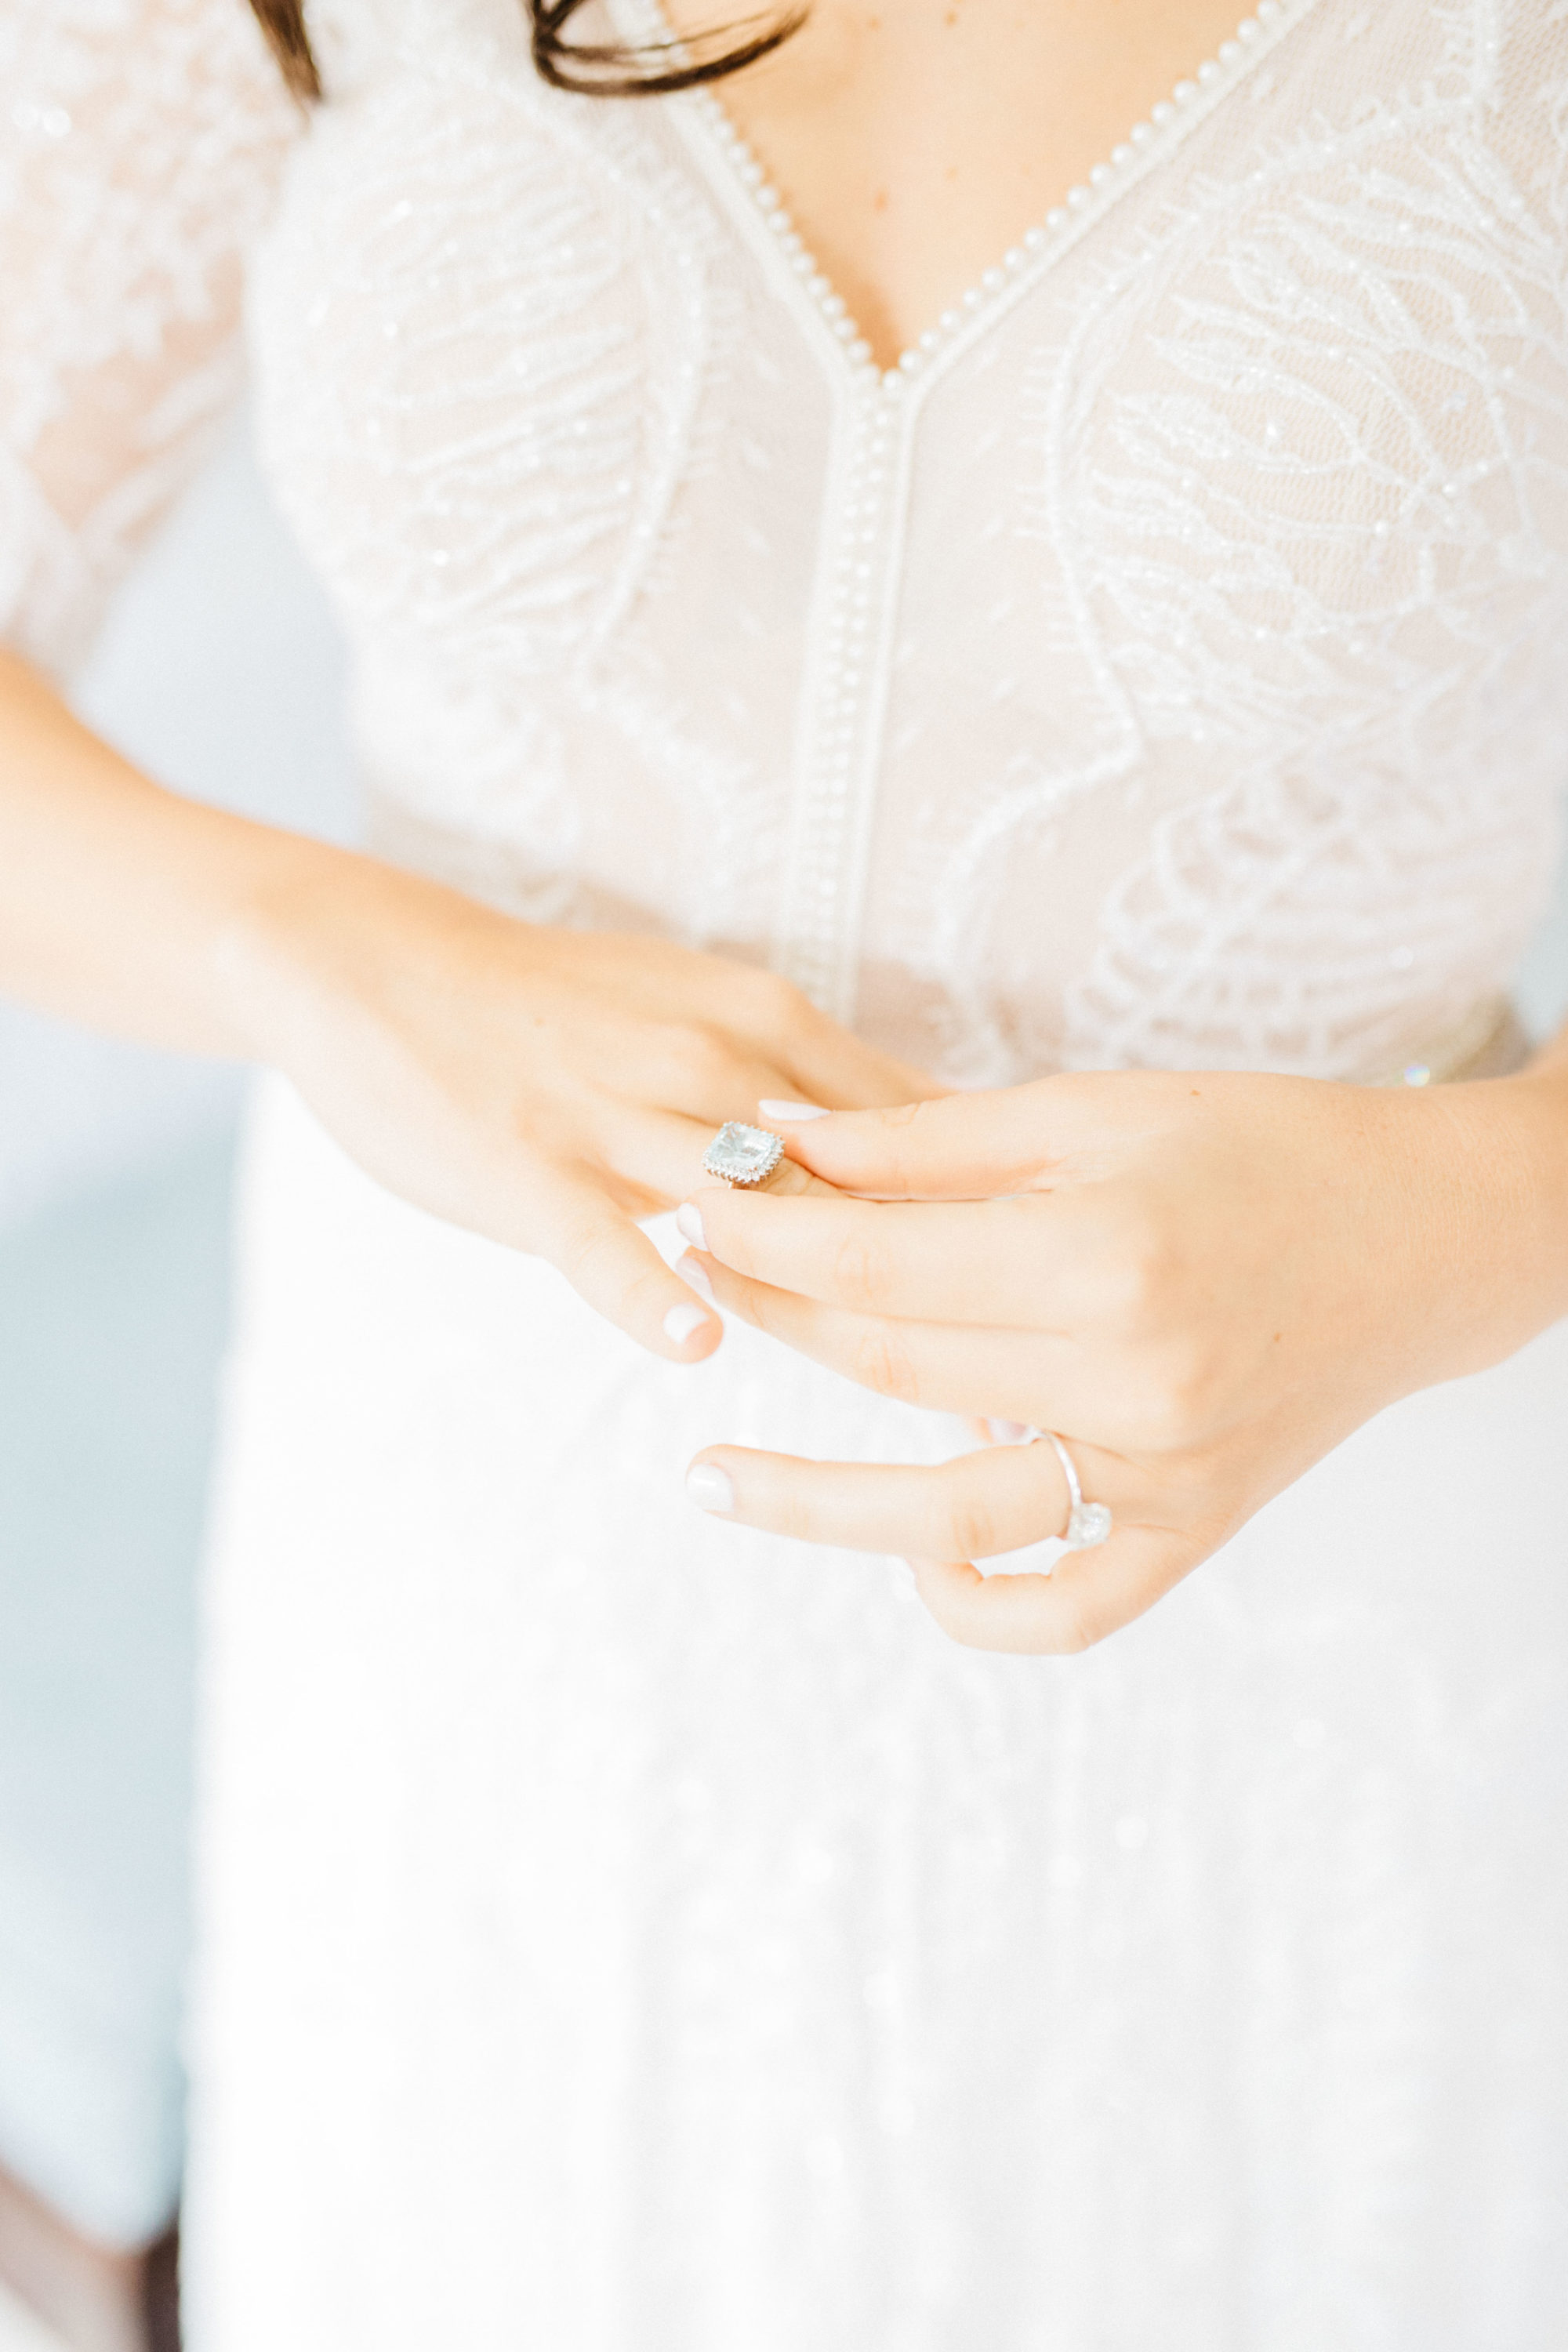 Bride putting ring on